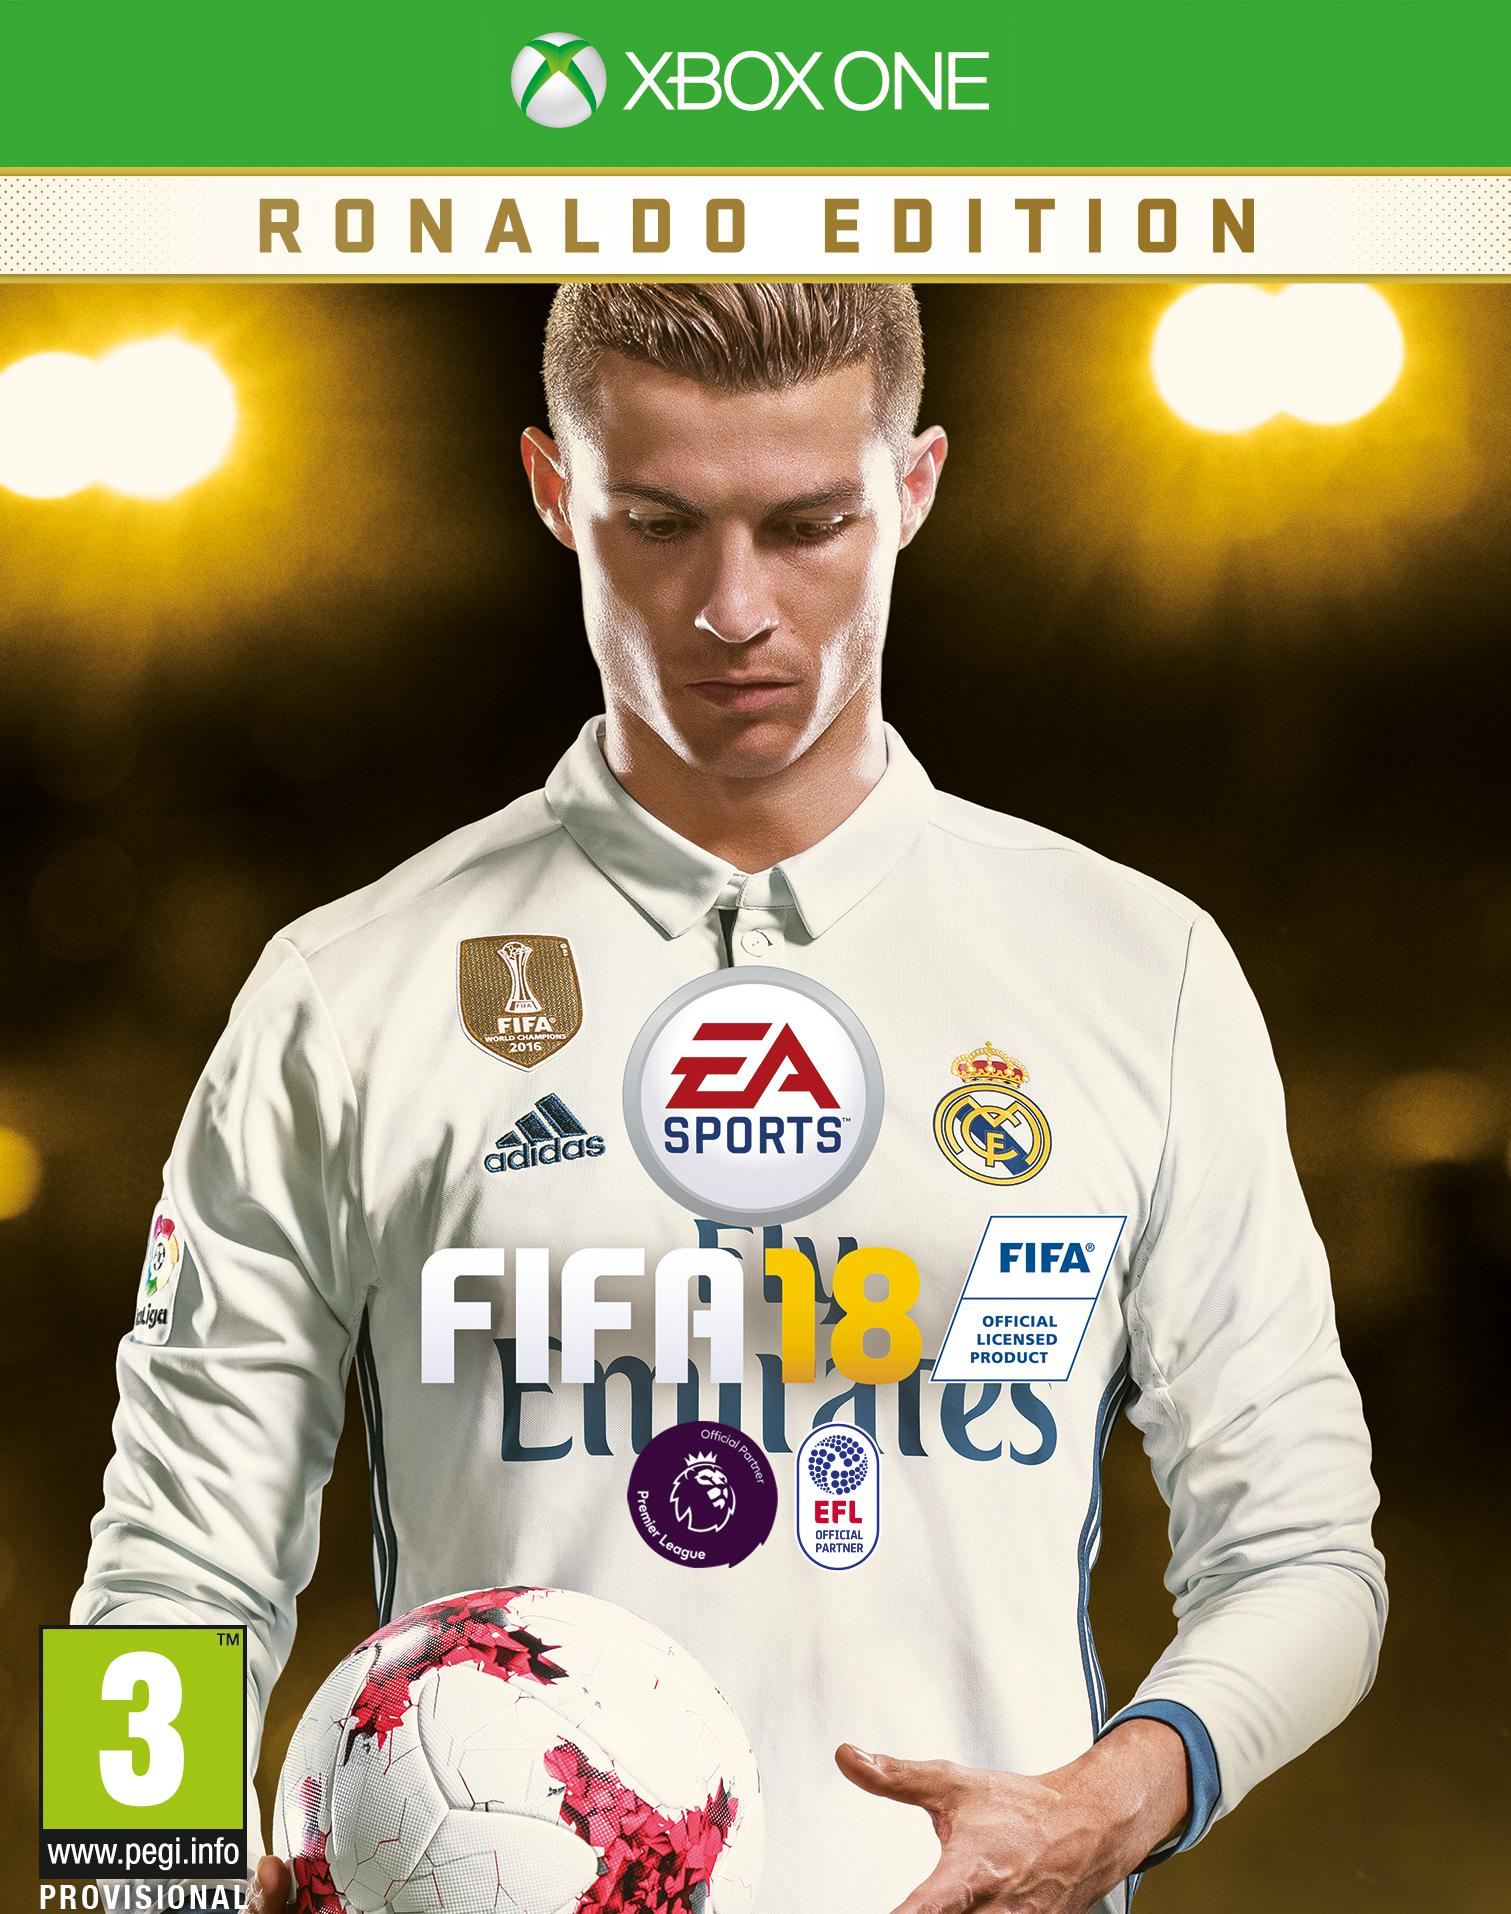 Fifa 18 celebrity preview purple football kits fifa 18